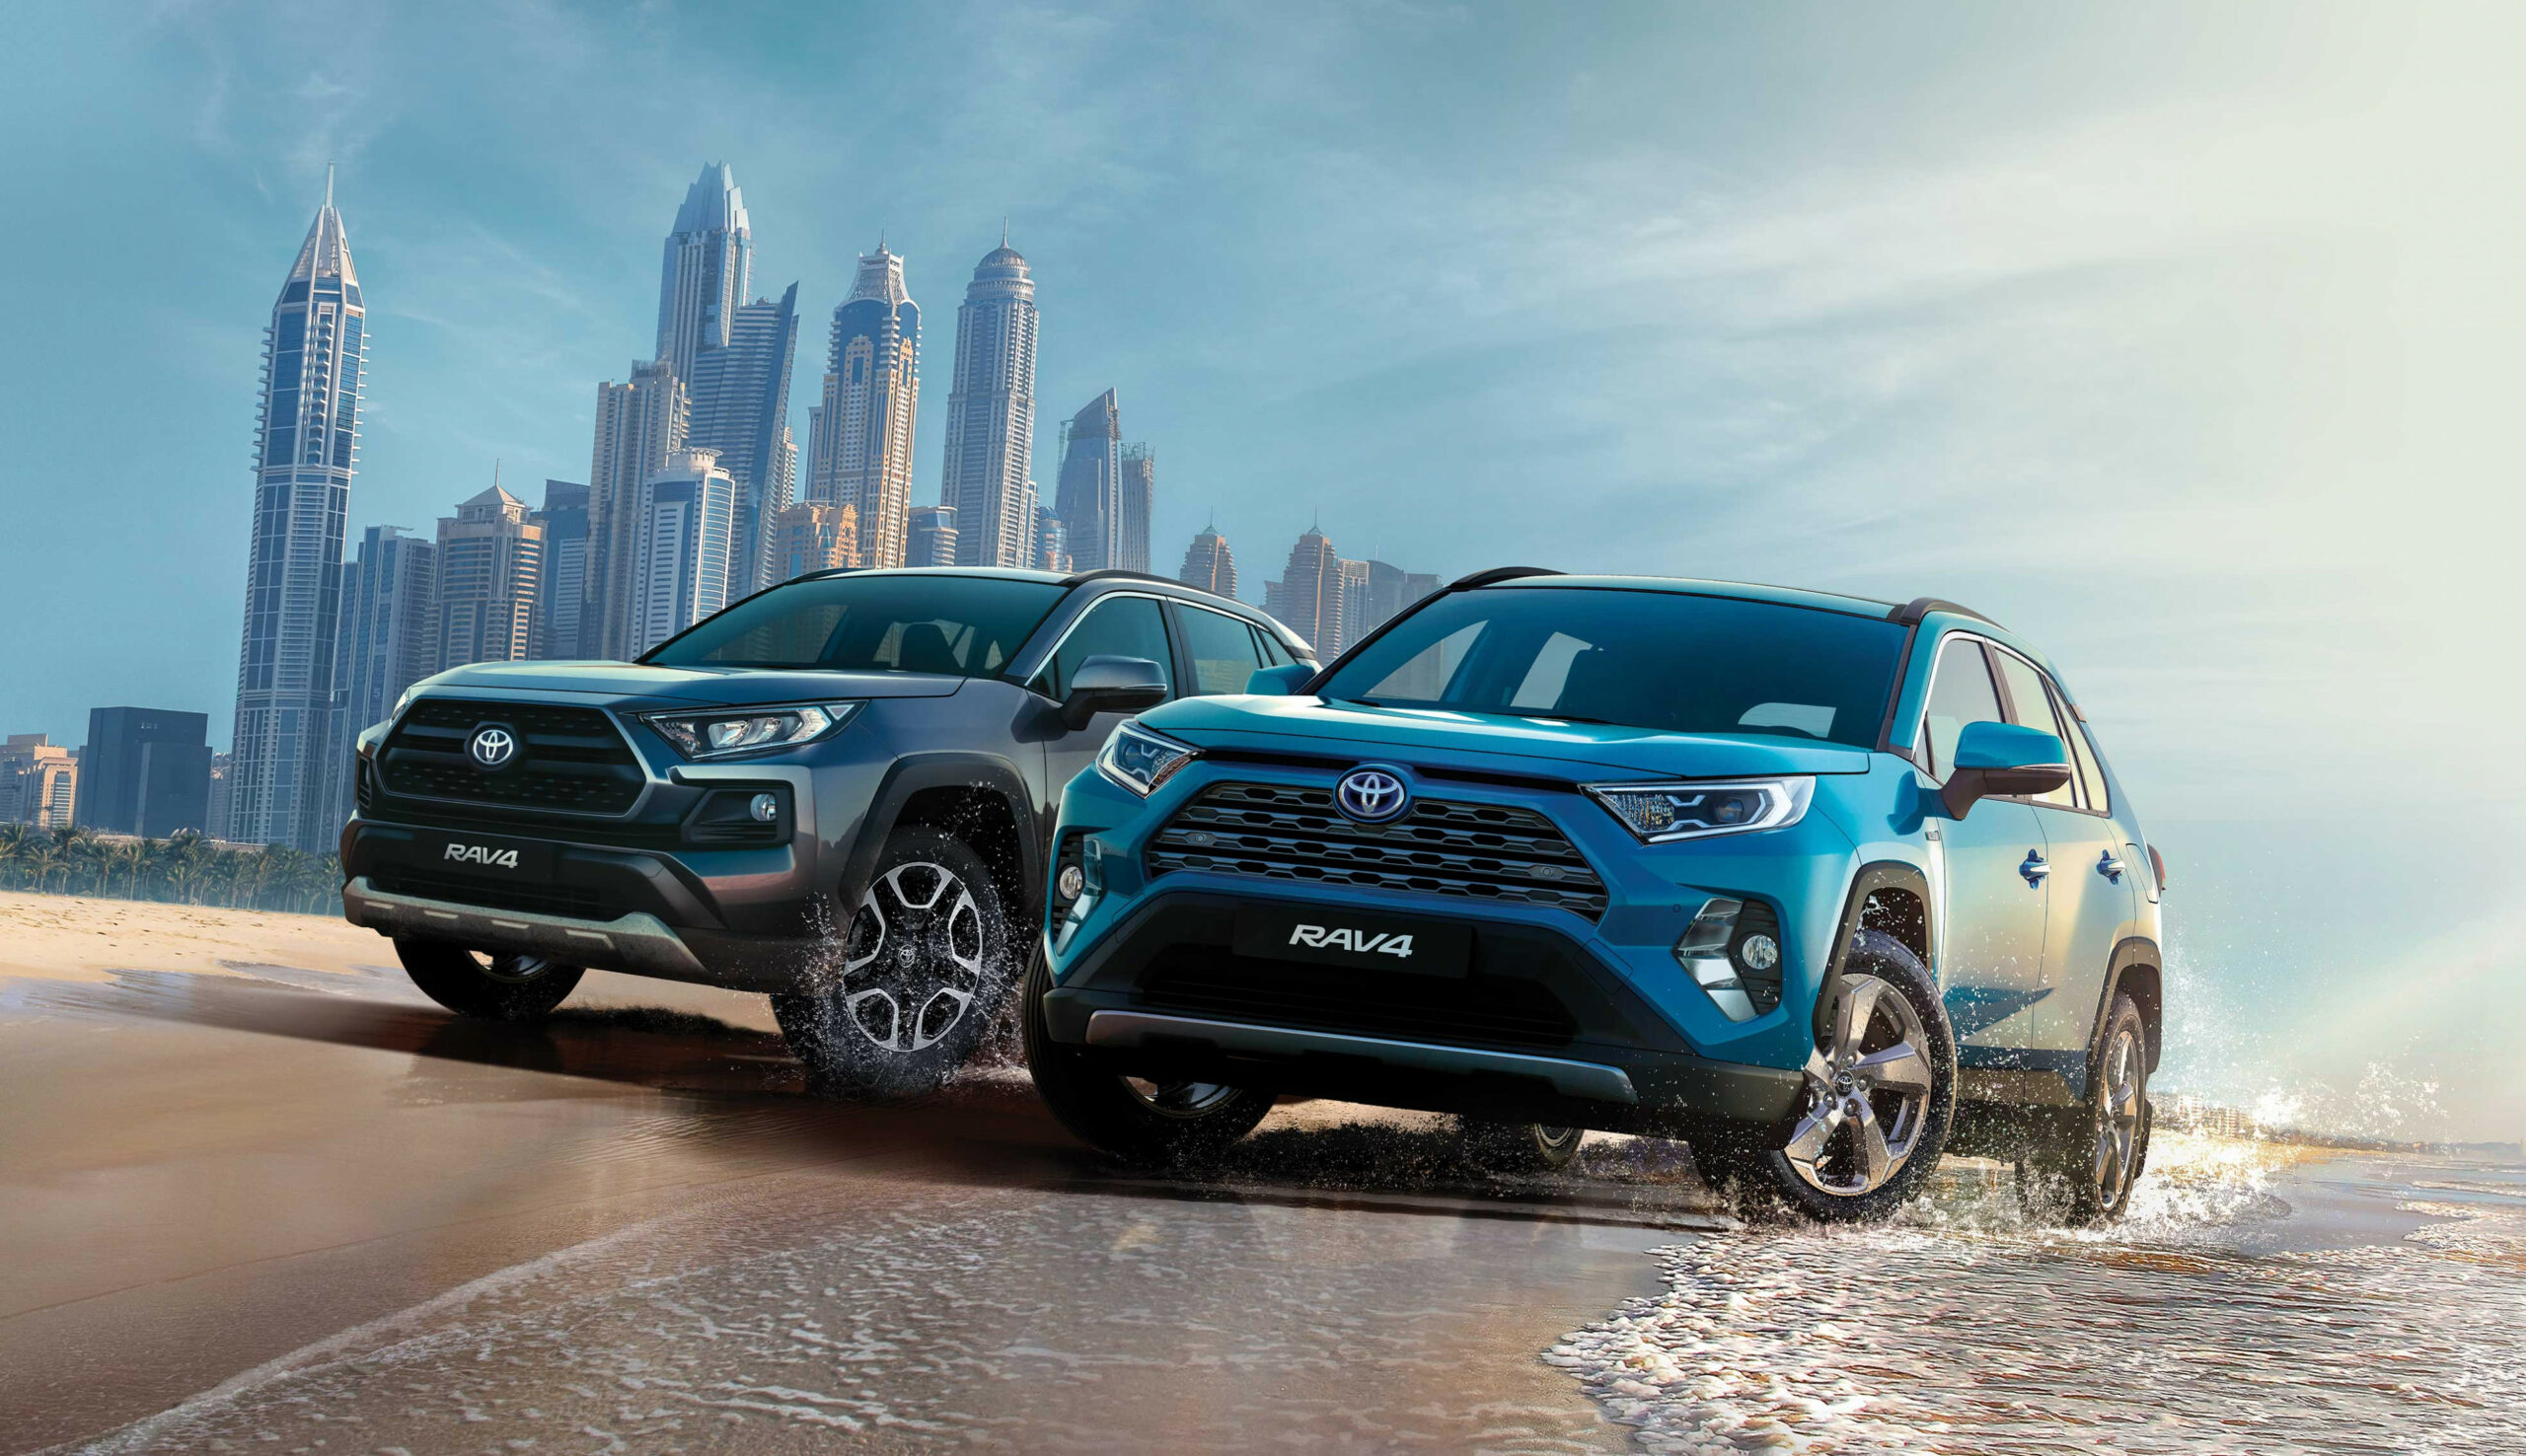 Celebrate 7 Now' with exciting deals from Al-Futtaim Toyota ...